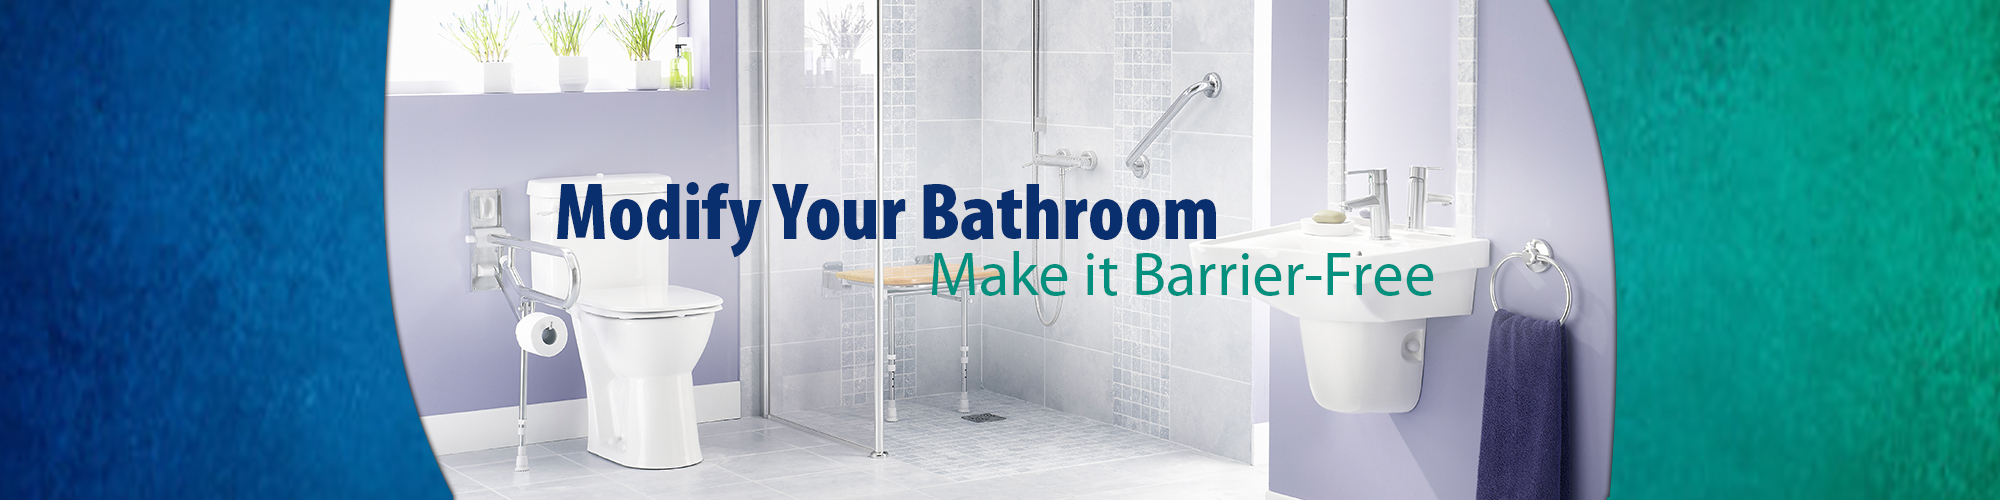 Modify your Bathroom - Make it Barrier Free